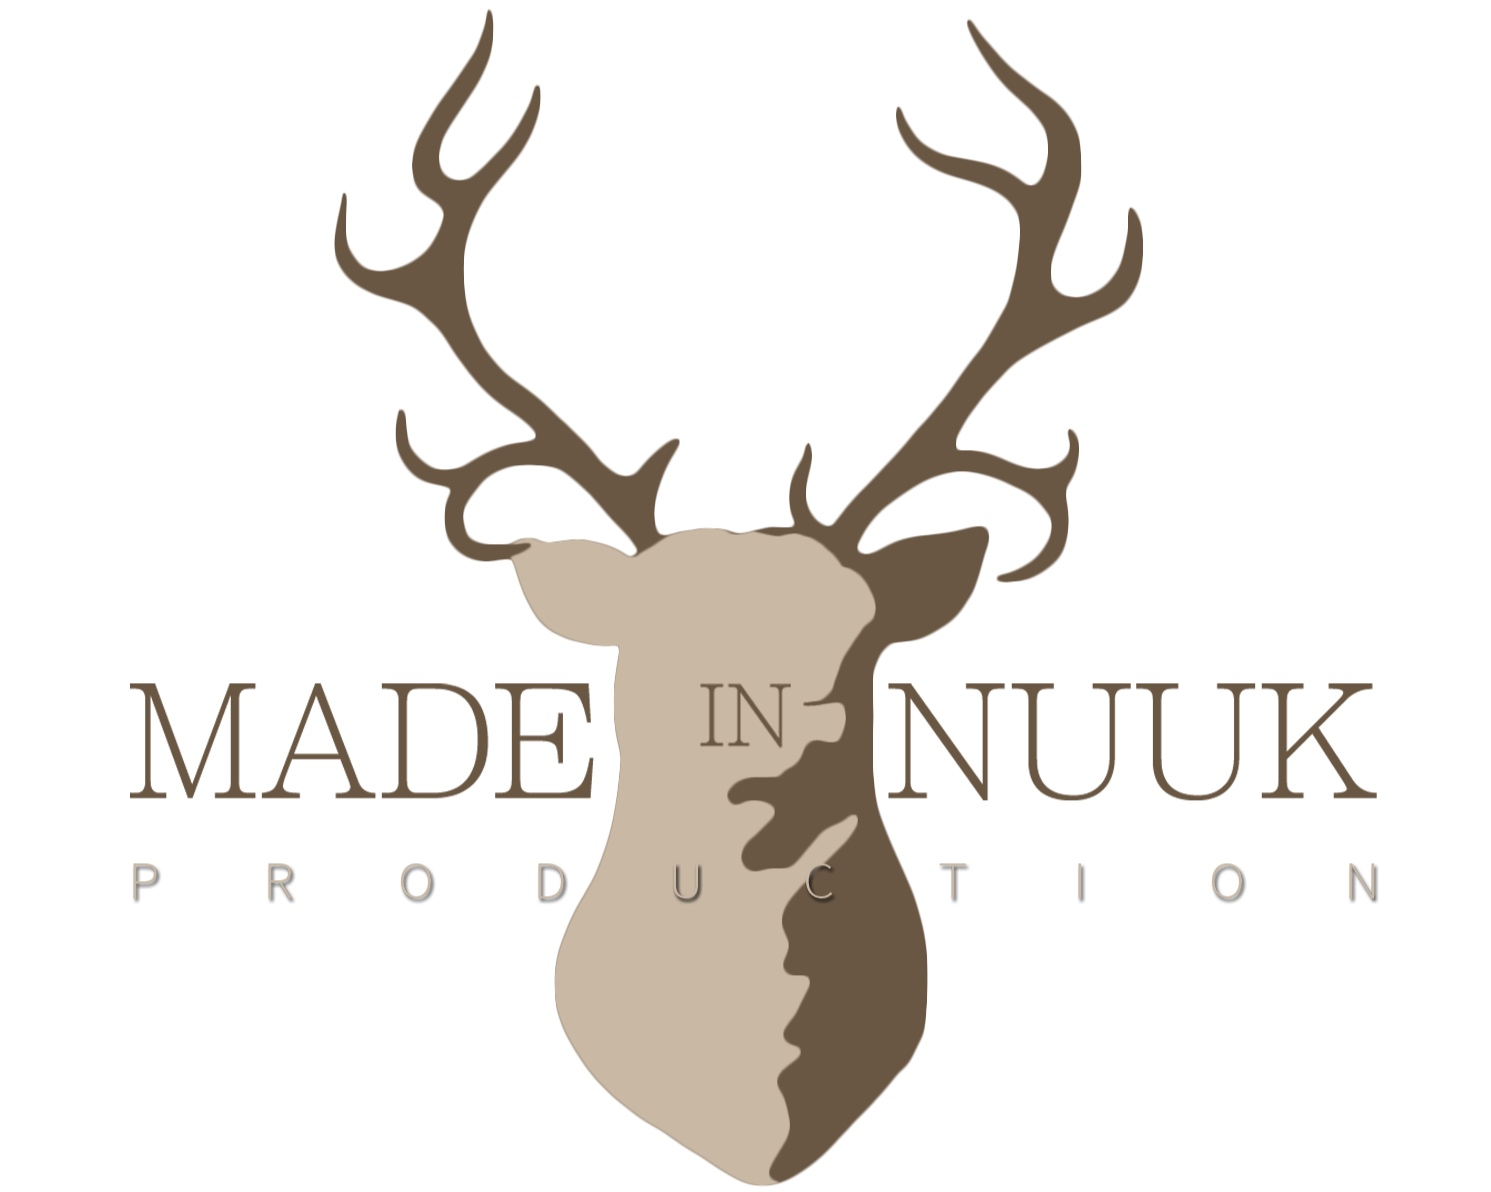 Made in Nuuk production